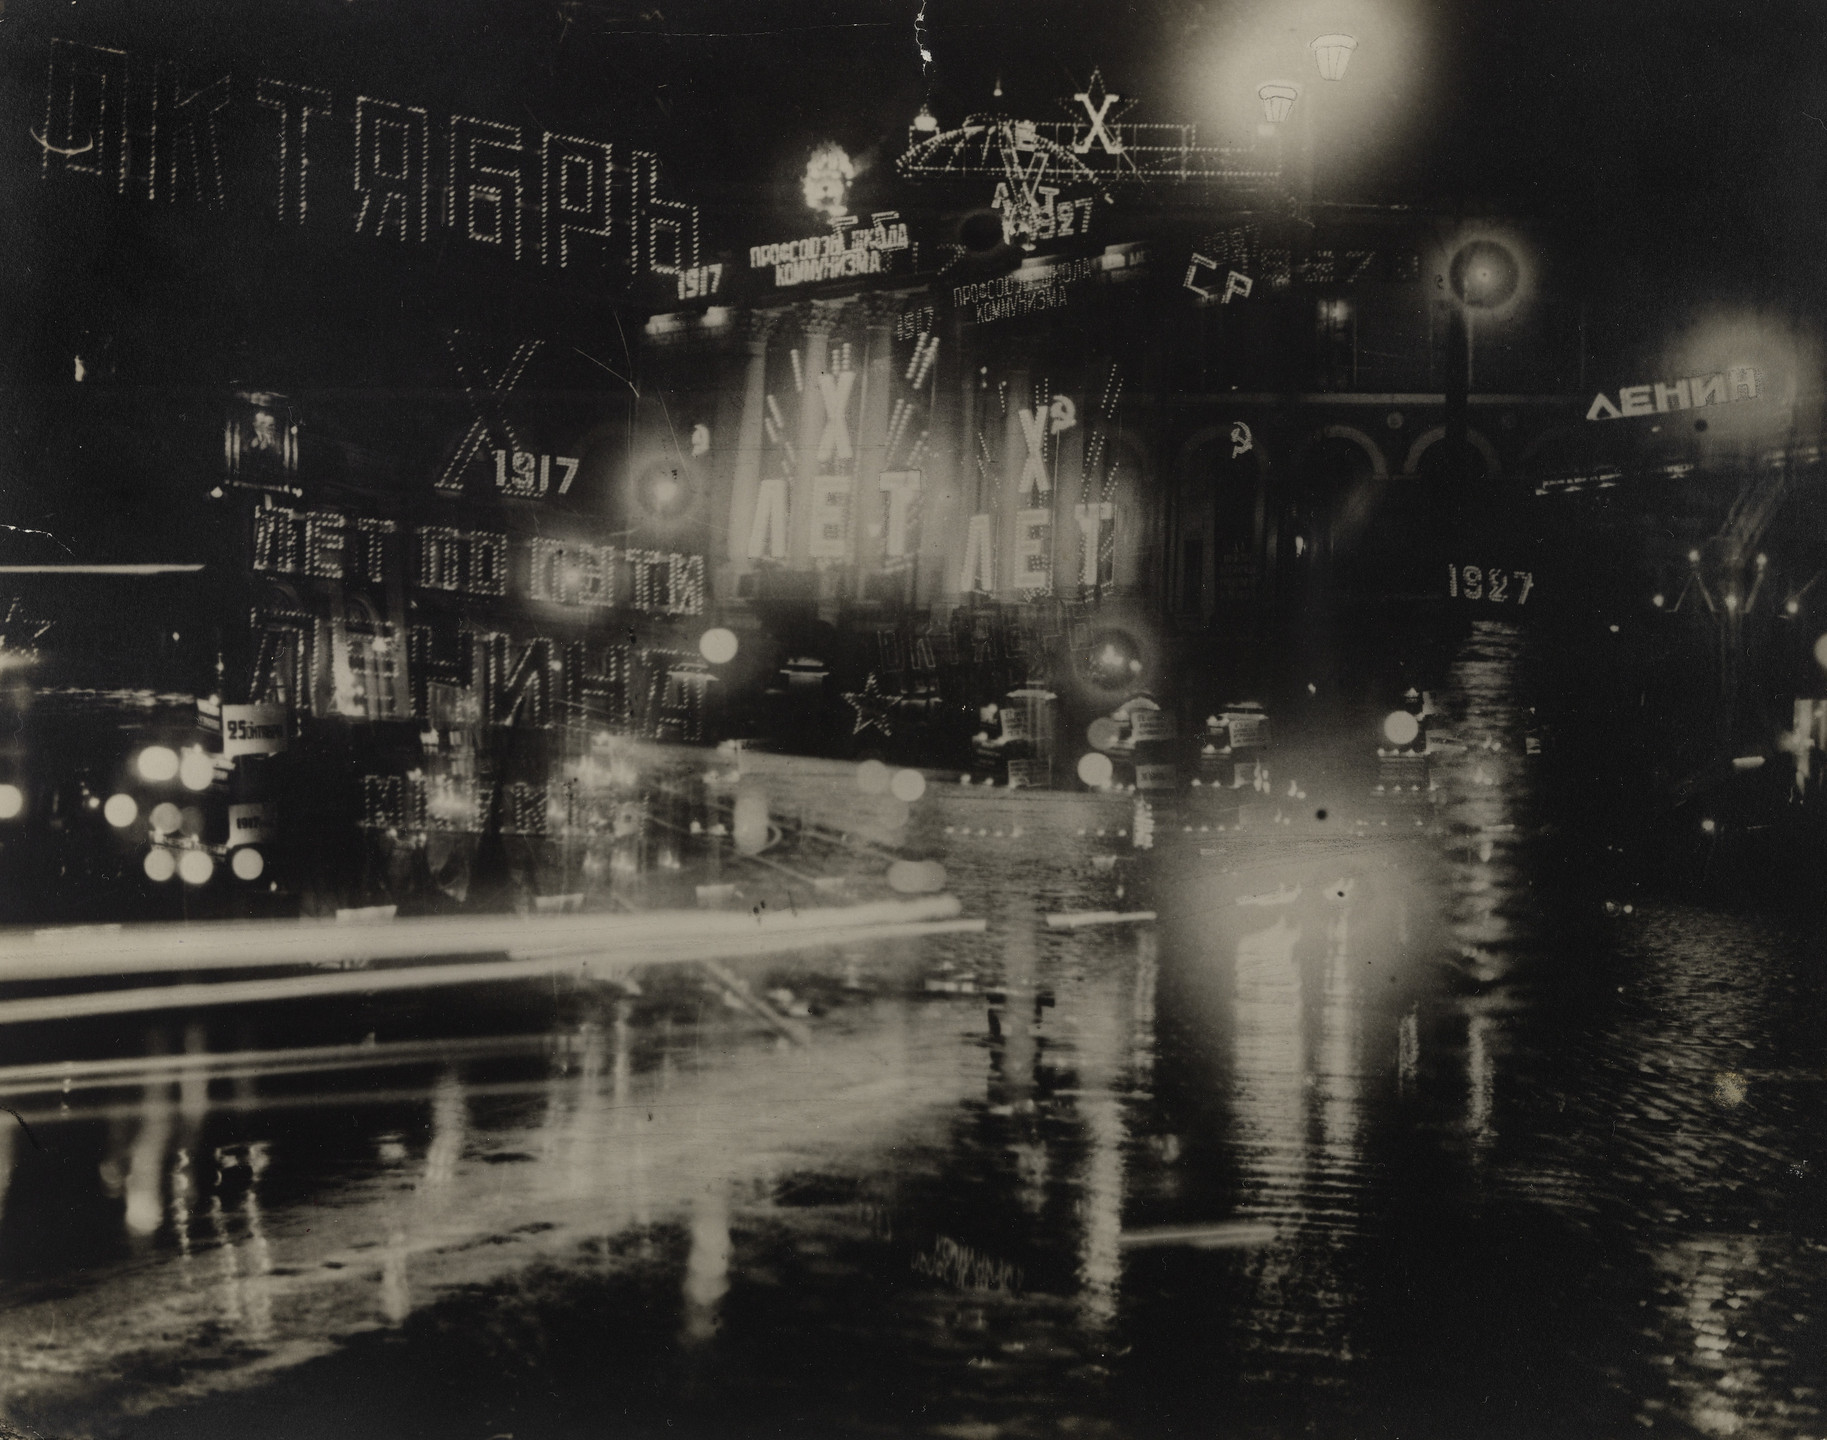 Roman Karmen. Moscow Illuminations Celebrating the Tenth Anniversary of the Russian Revolution. 1927